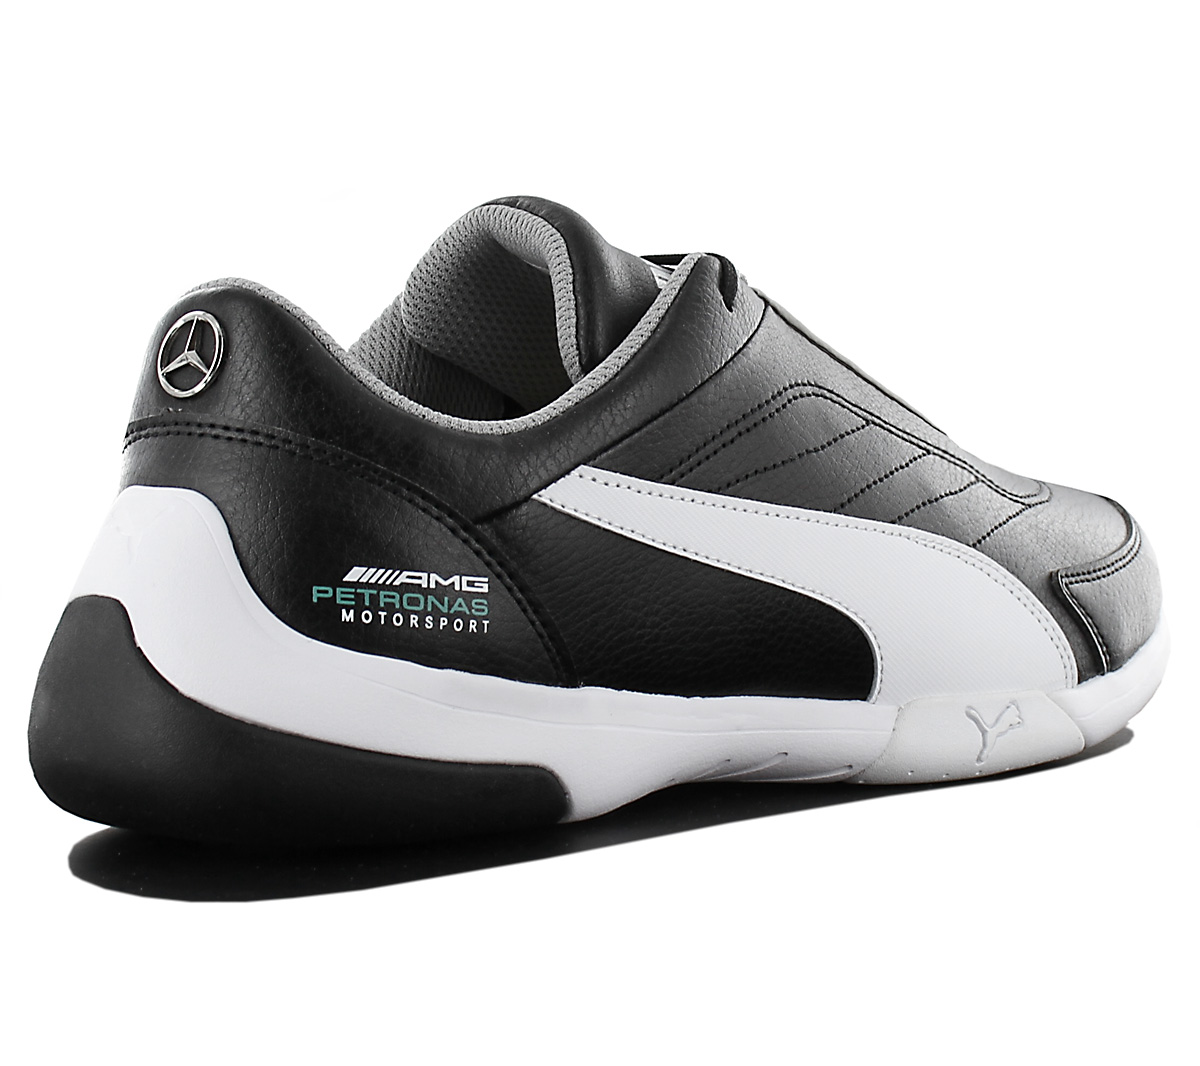 Details about Puma Mercedes AMG Petronas Kart Cat III Men's Shoes Sneakers 306244 02 New